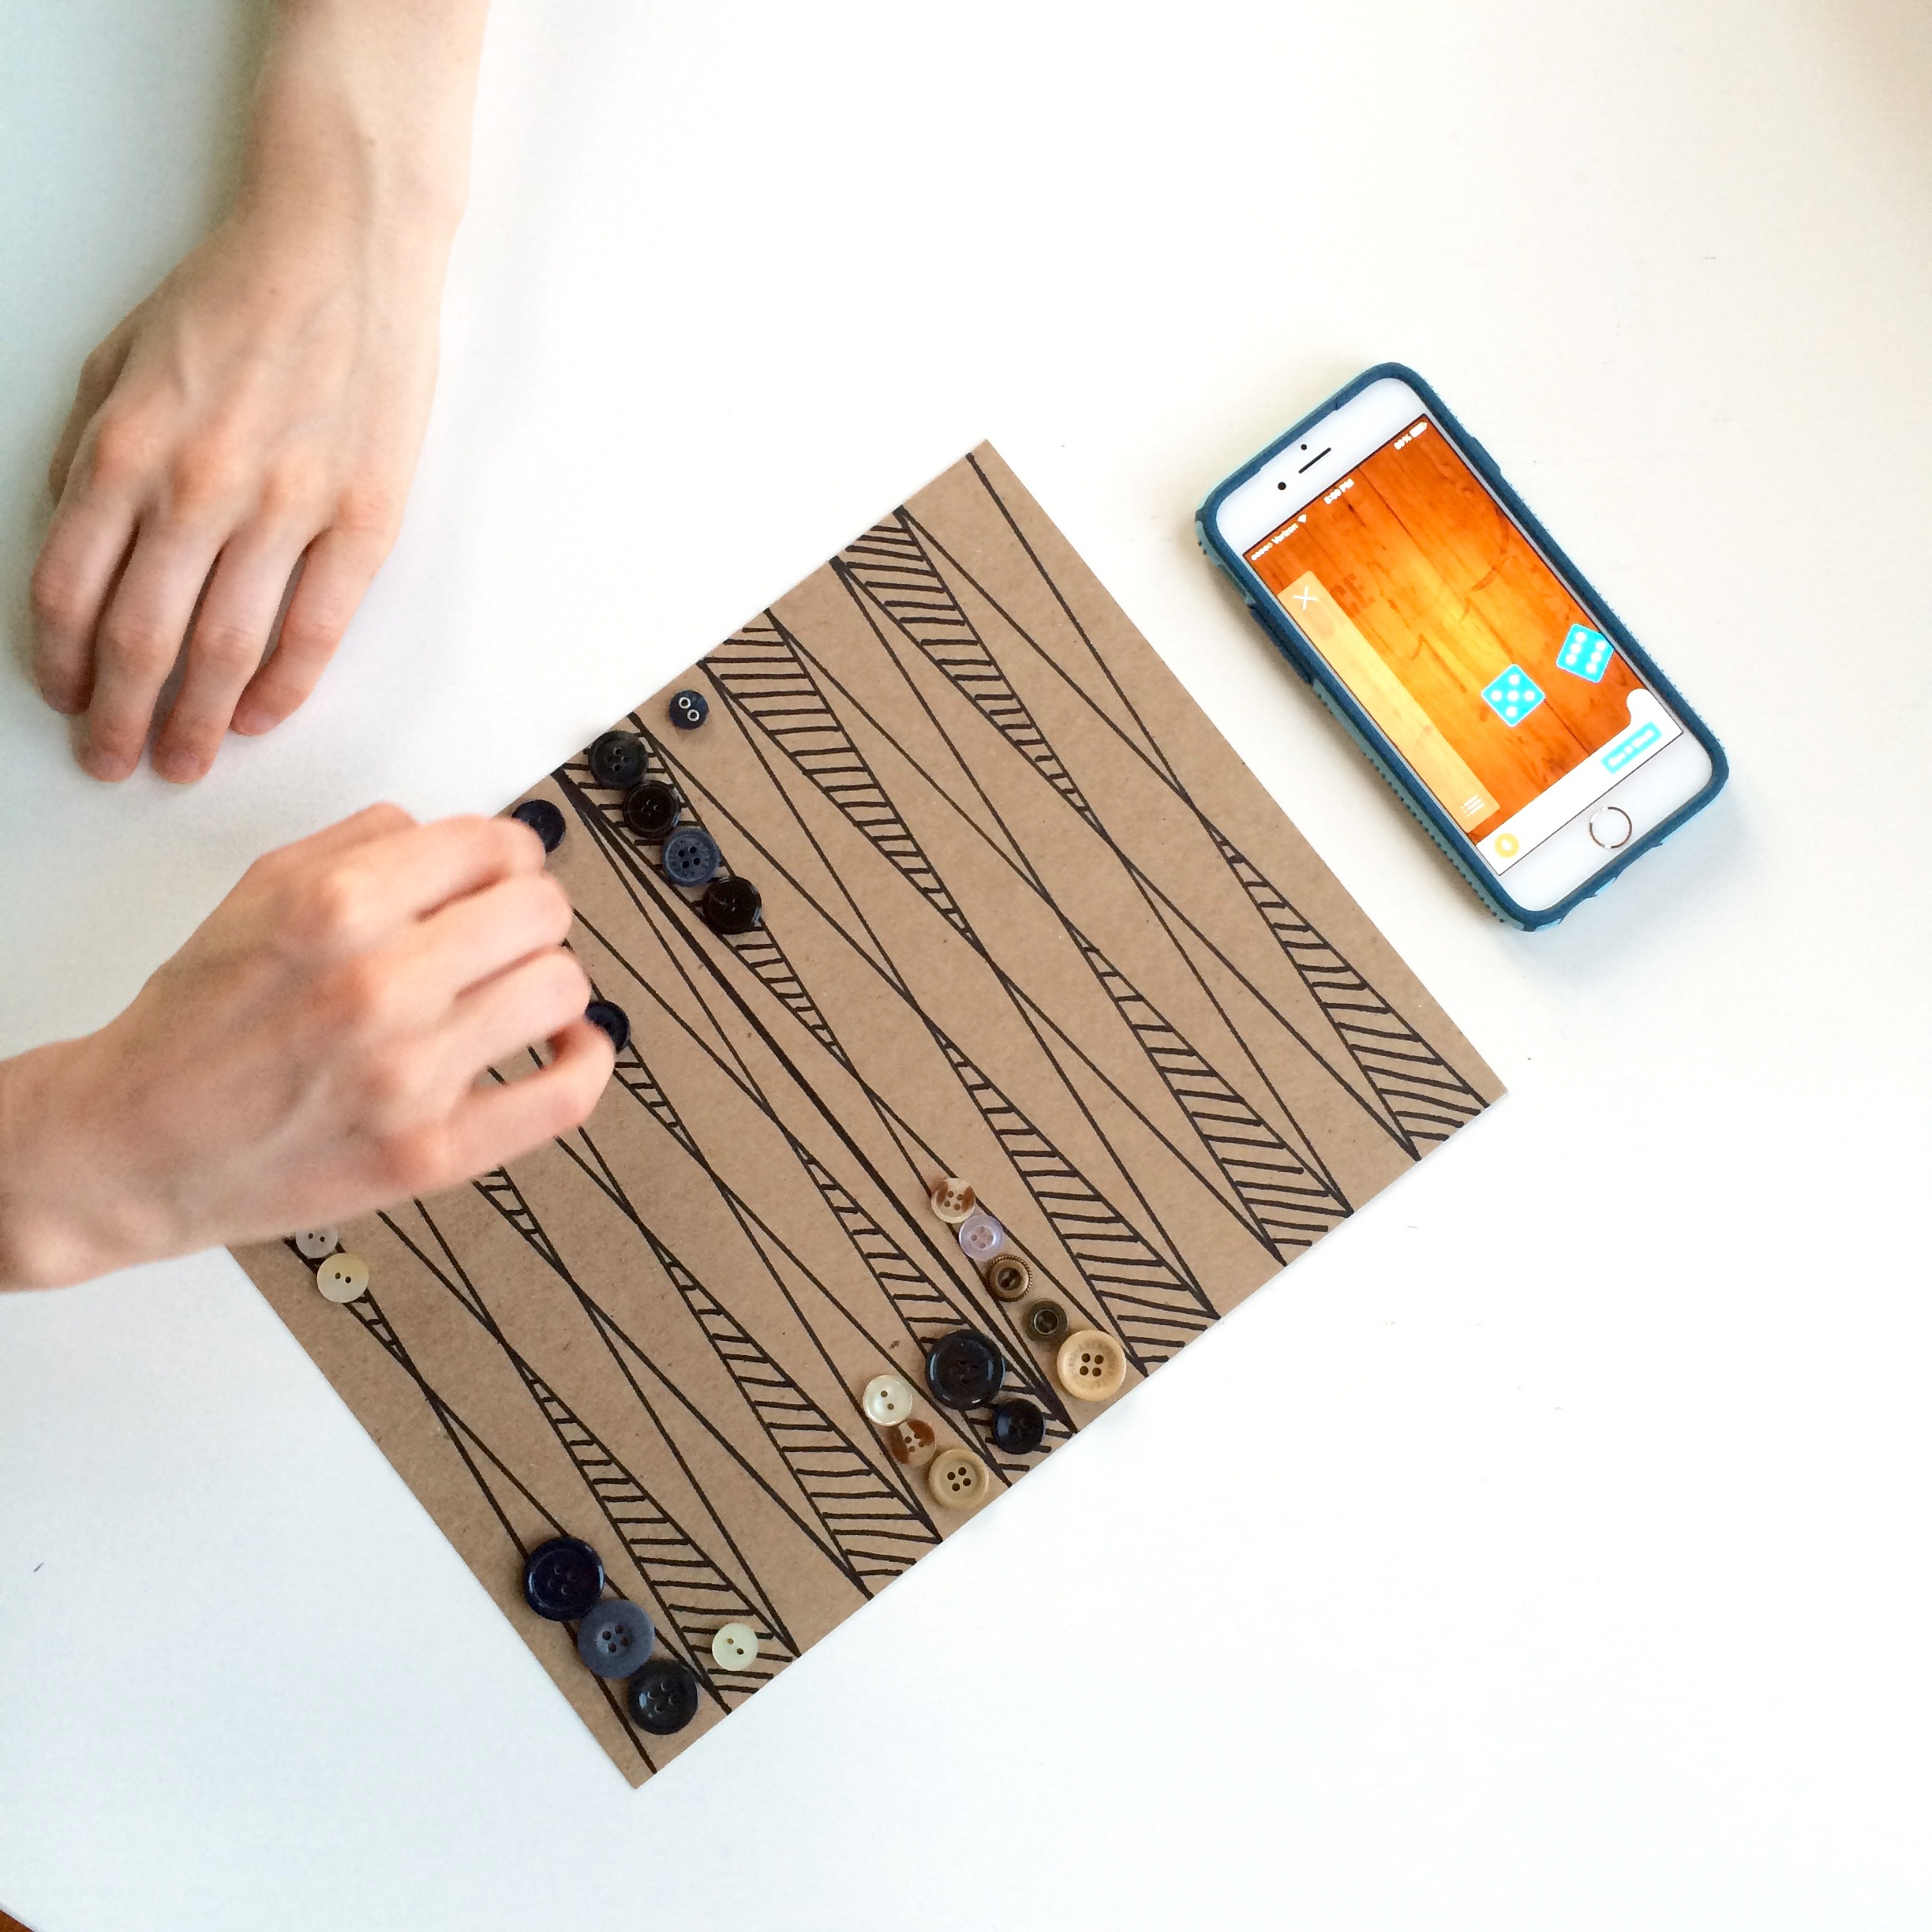 This is a photo of Agile Printable Backgammon Board